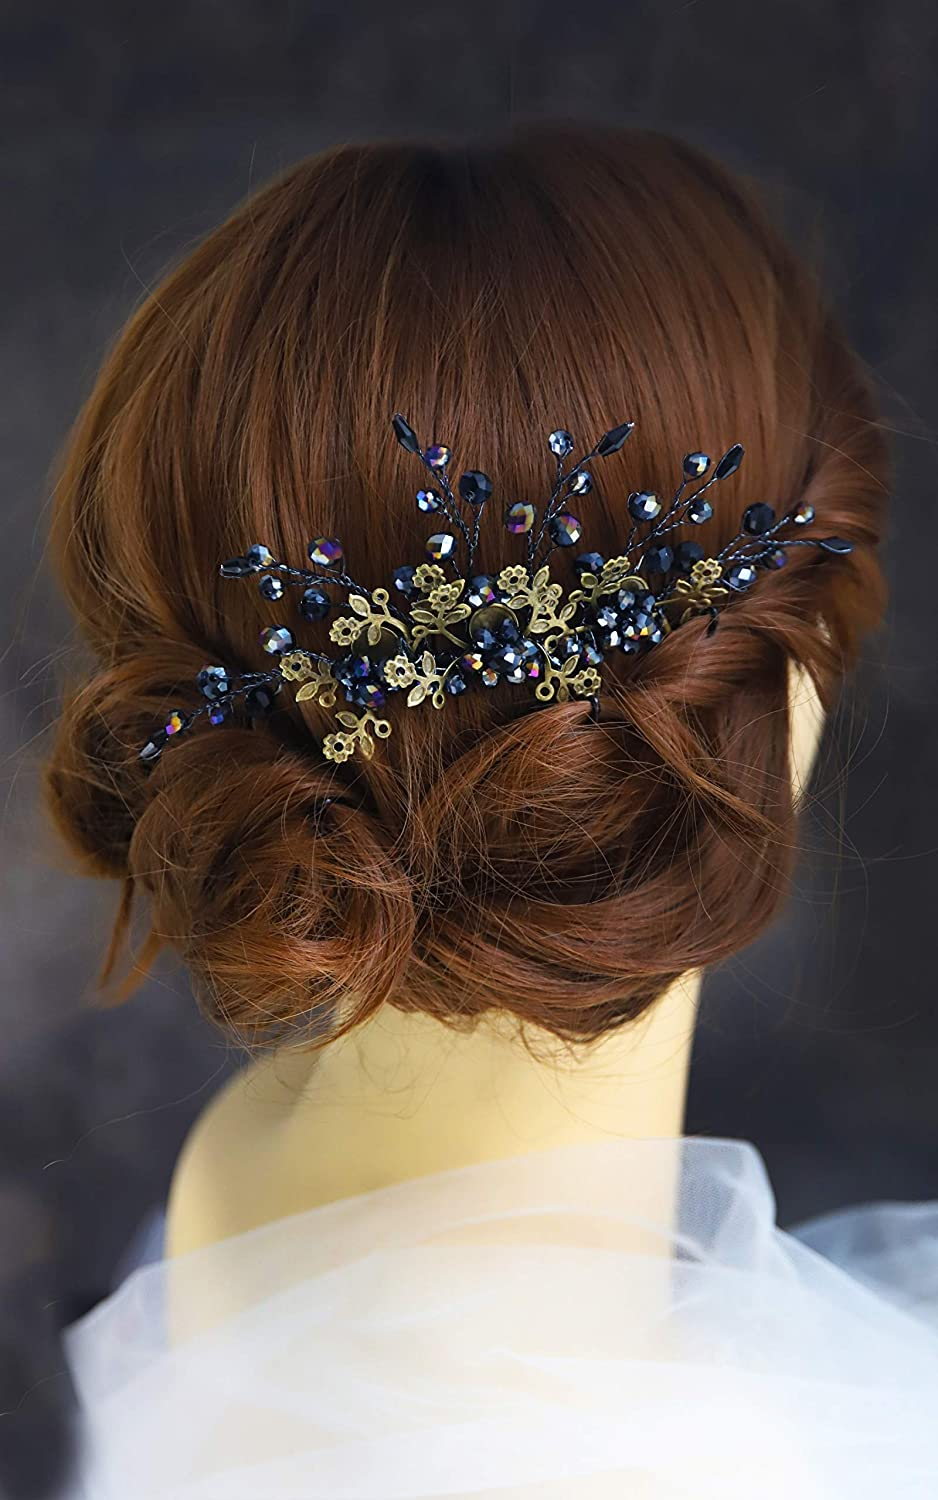 Kercisbeauty Wedding Bridal Bridesmaids Black Crystal Bronze Flower Gothic Hair Comb Slide for Prom,Bun Hair Accessory,Halloween,Ball